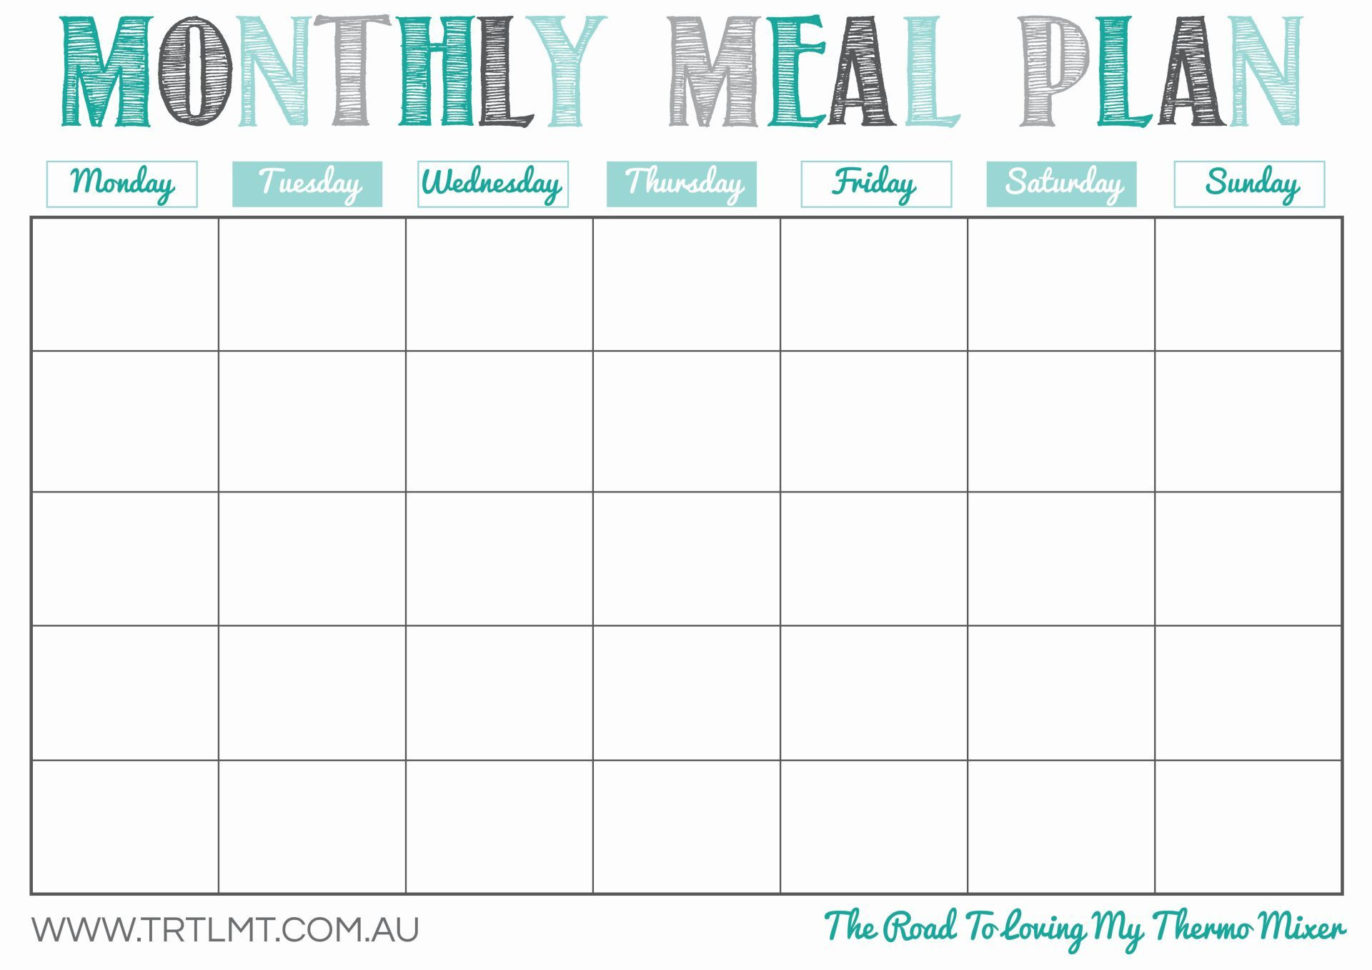 Meal Plan Spreadsheet Throughout Meal Plan Spreadsheet Collections  Okodxx